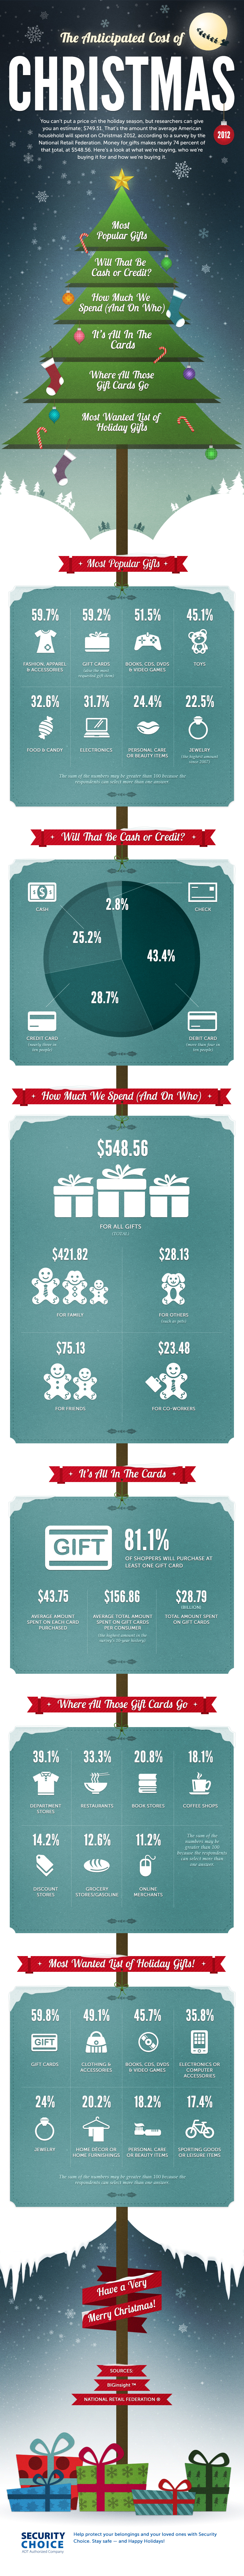 The Anticipated Cost of Christmas 2012